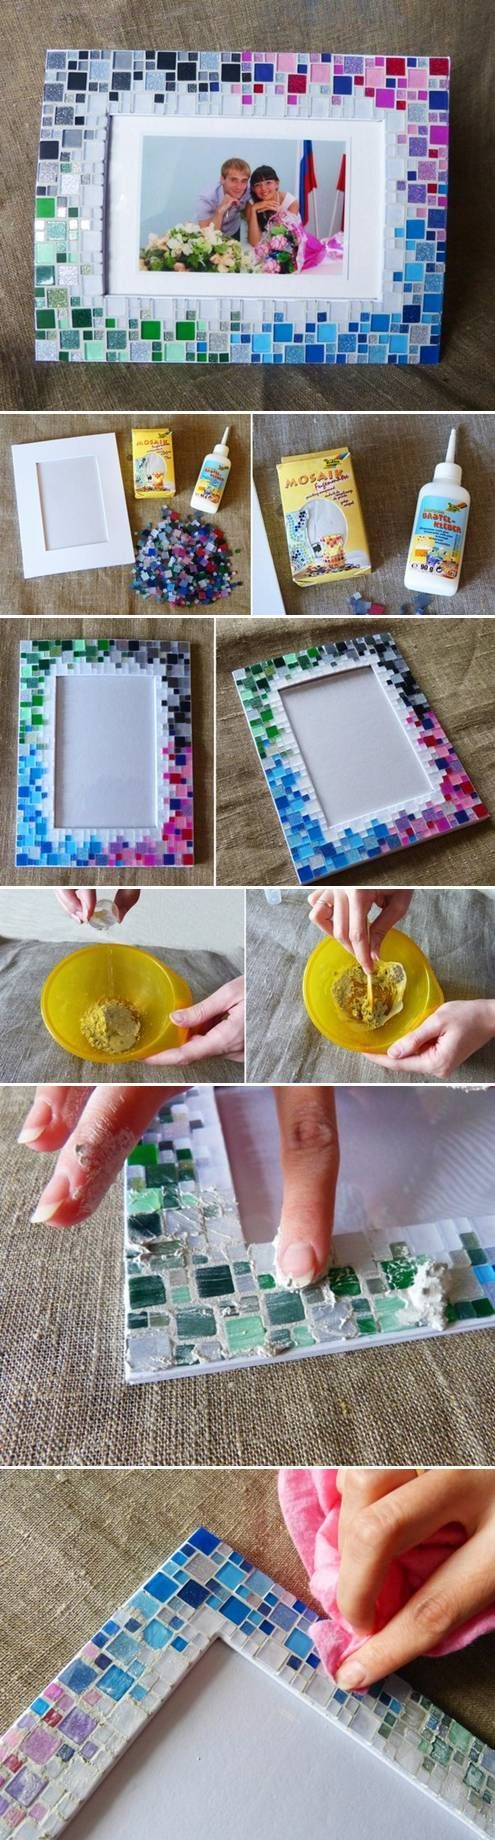 324 best diy with love images on pinterest good ideas crafts ideas for mosaic projects instructions crafts do it yourself solutioingenieria Image collections